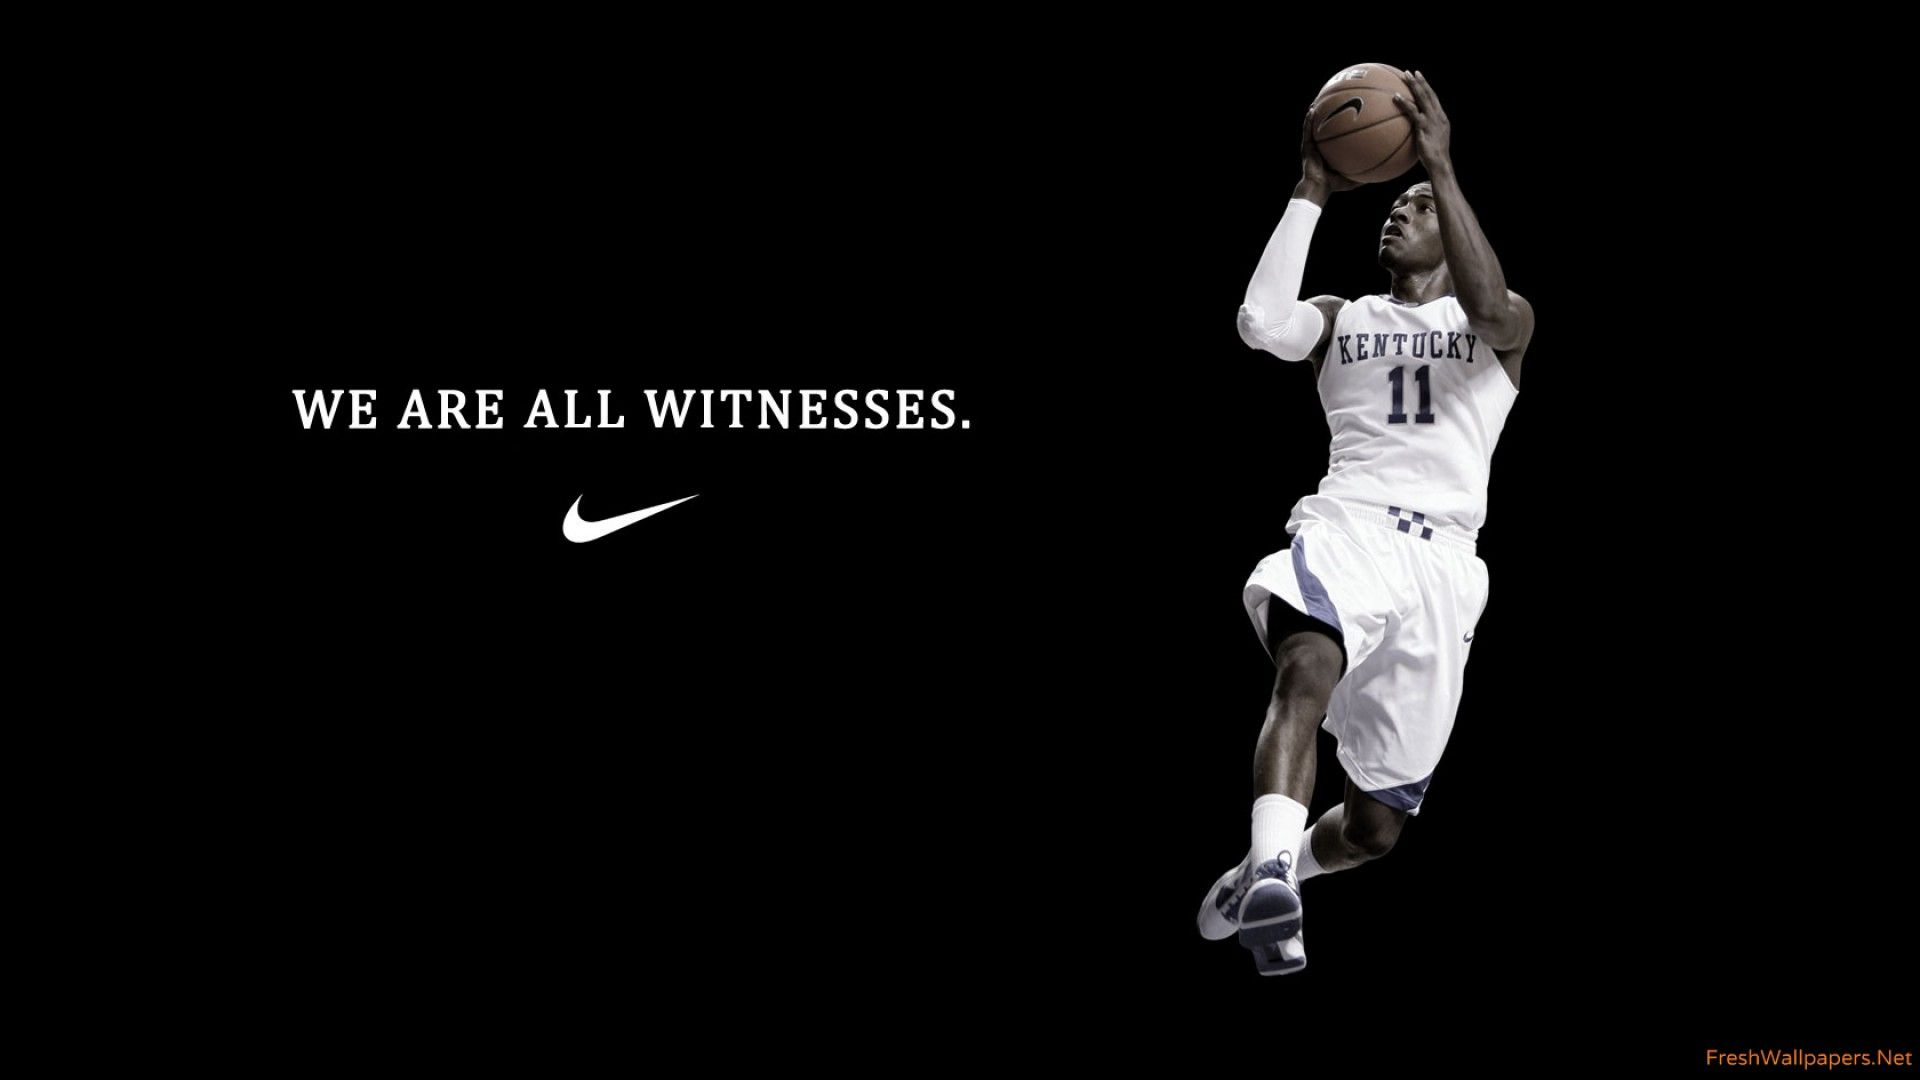 Kentucky Basketball picture image